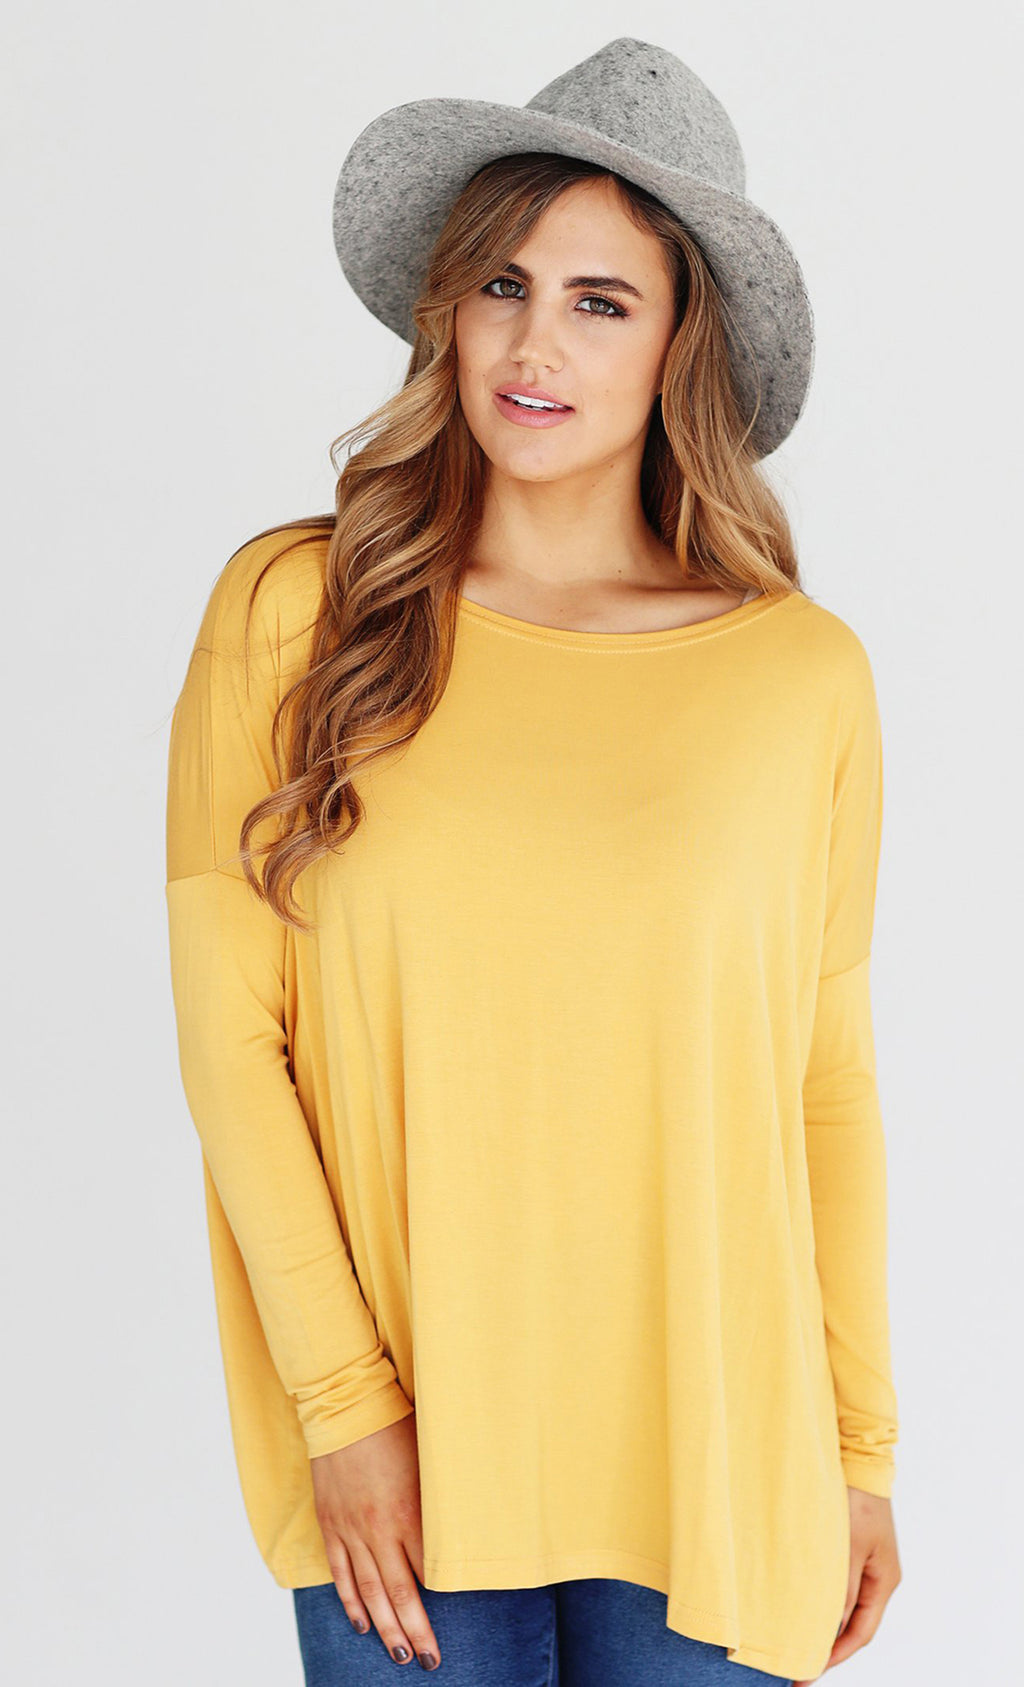 Basic Piko 1988 Mustard Golden Yellow Bamboo Piko Comfy Boat Neck Long Sleeve Slouchy Knit Tee Shirt Top